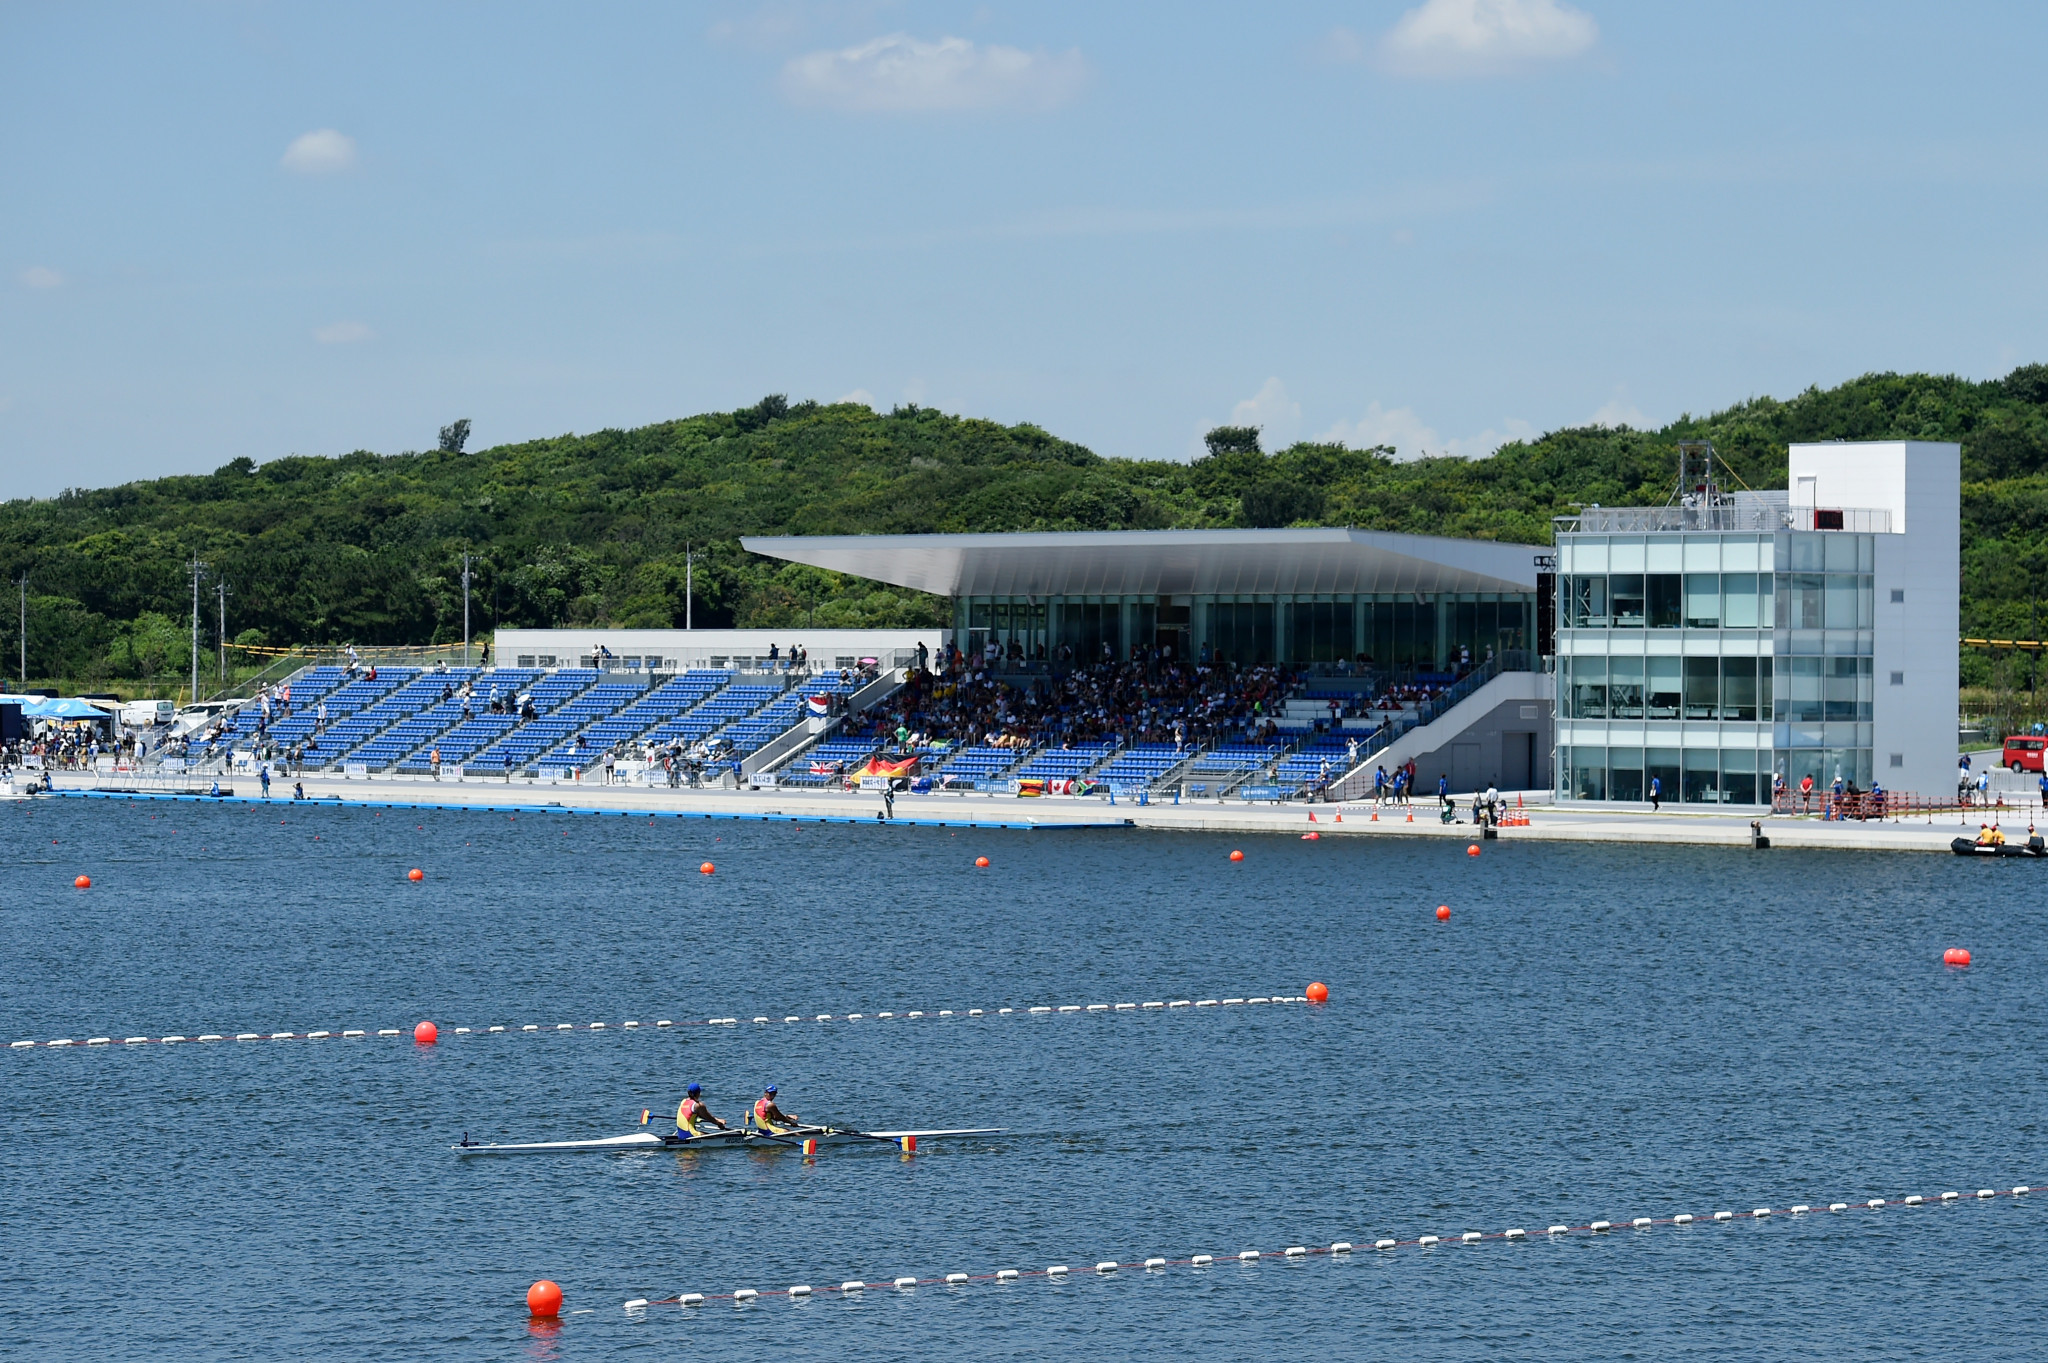 Olympic rowing qualifier in Tokyo given green light as border restrictions set to ease